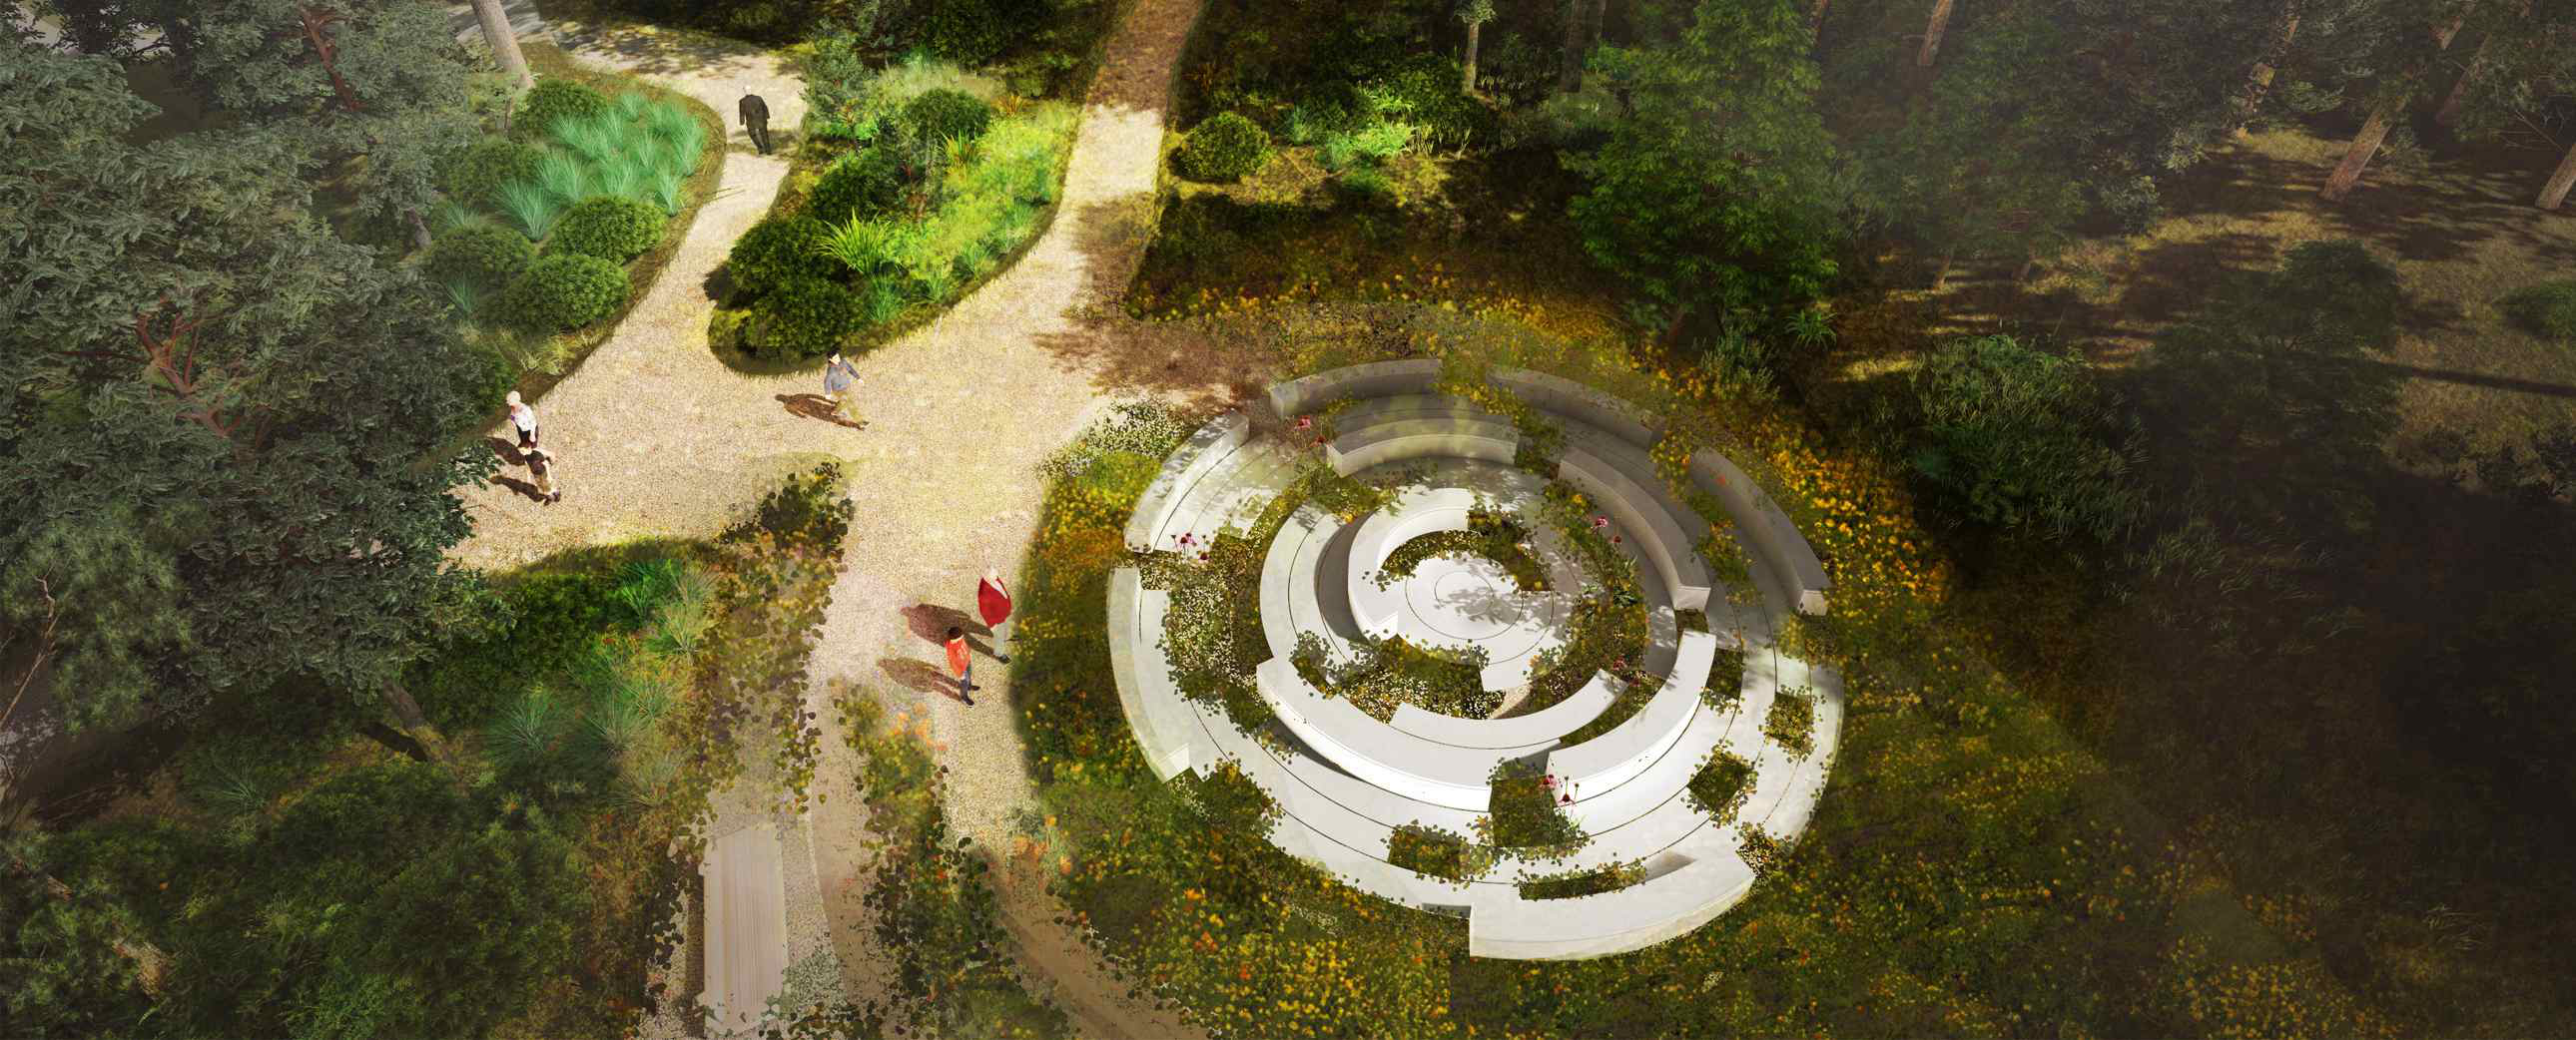 Landscape Architect Uses Game Engine For Design Projects